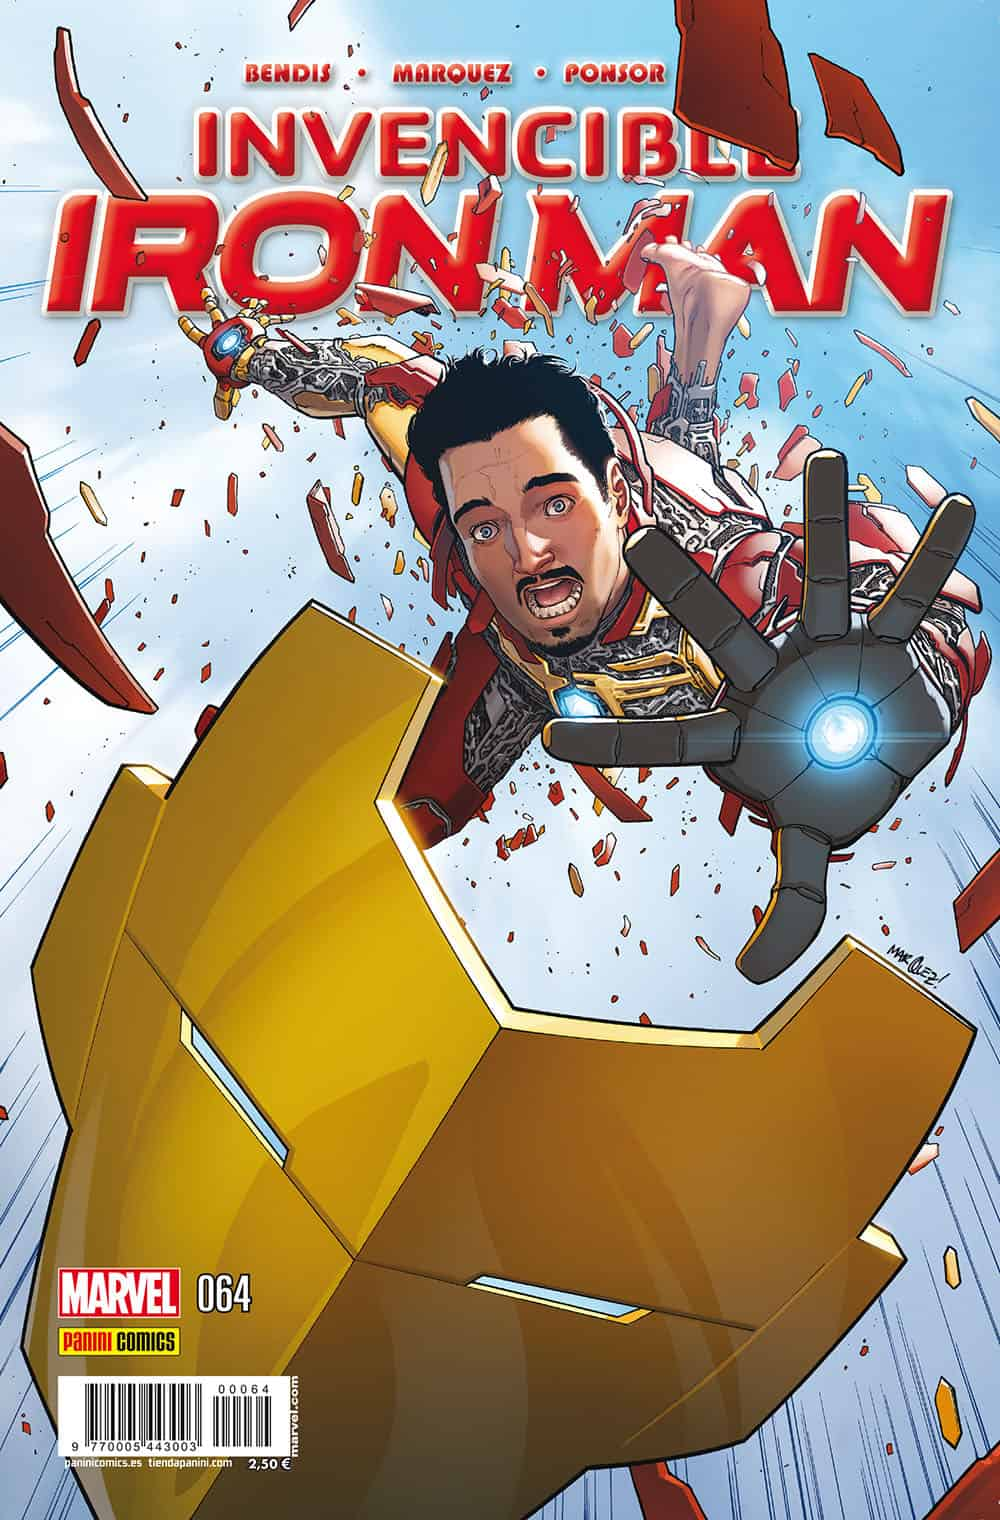 INVENCIBLE IRON MAN VOL 2 64